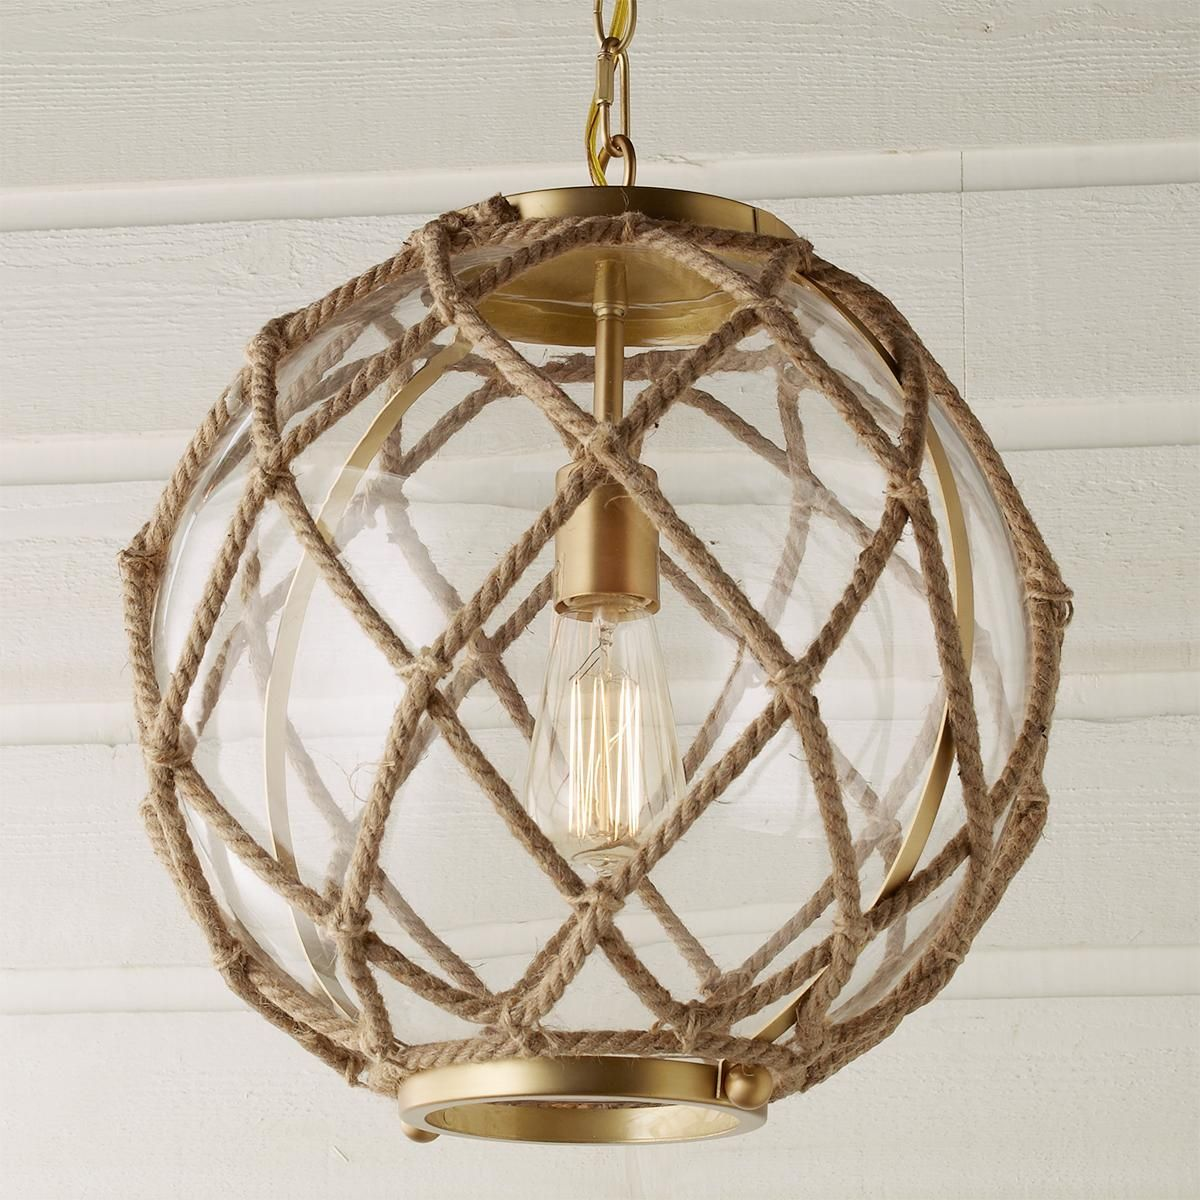 Jute Rope Globe Pendant With Images